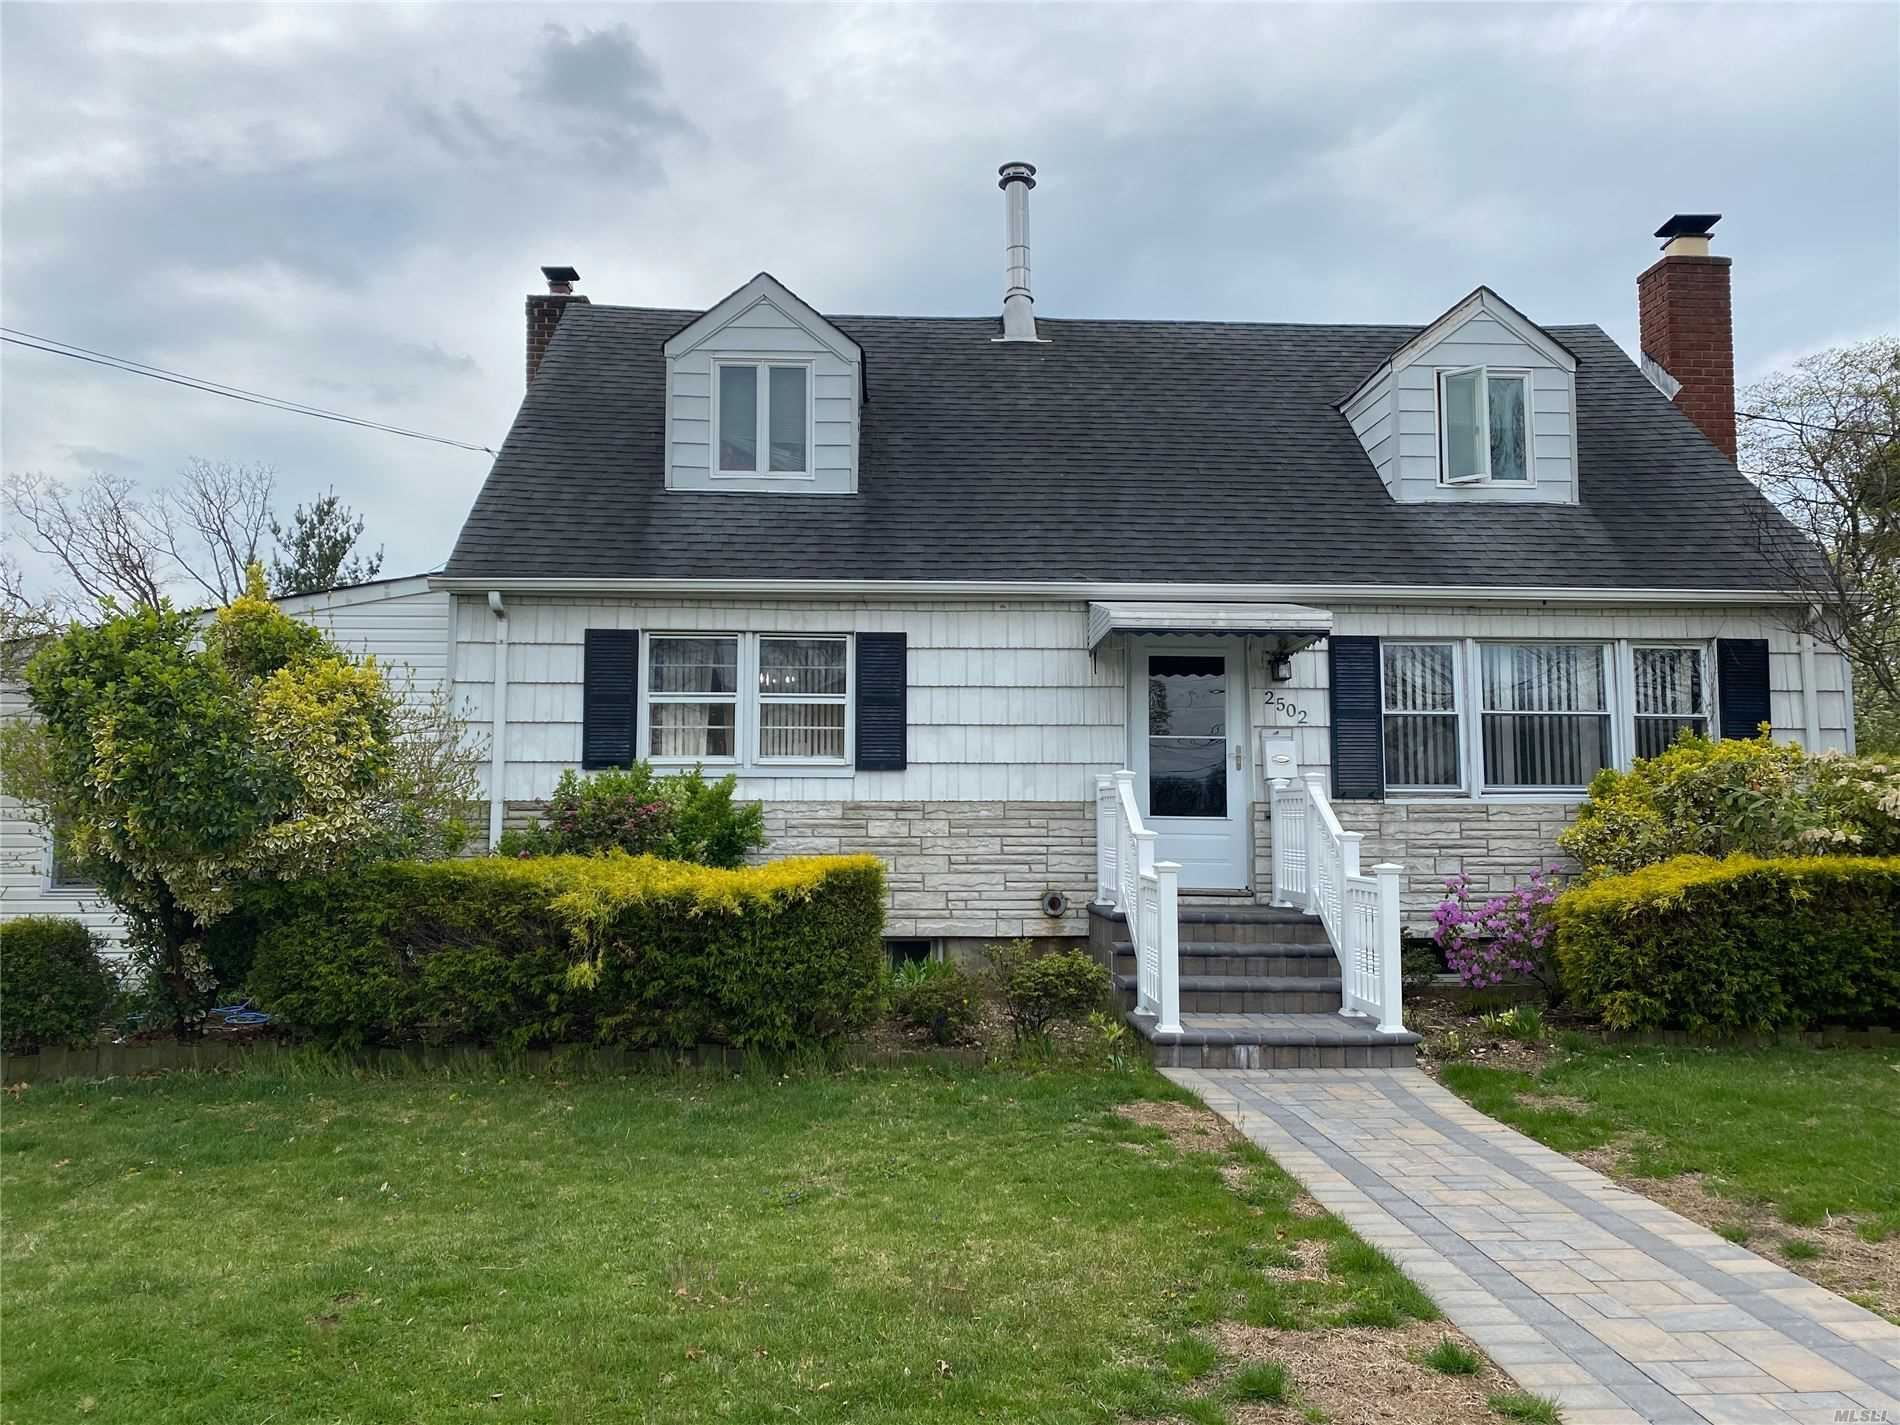 2502 7th St, East Meadow, NY 11554 - MLS#: 3212619